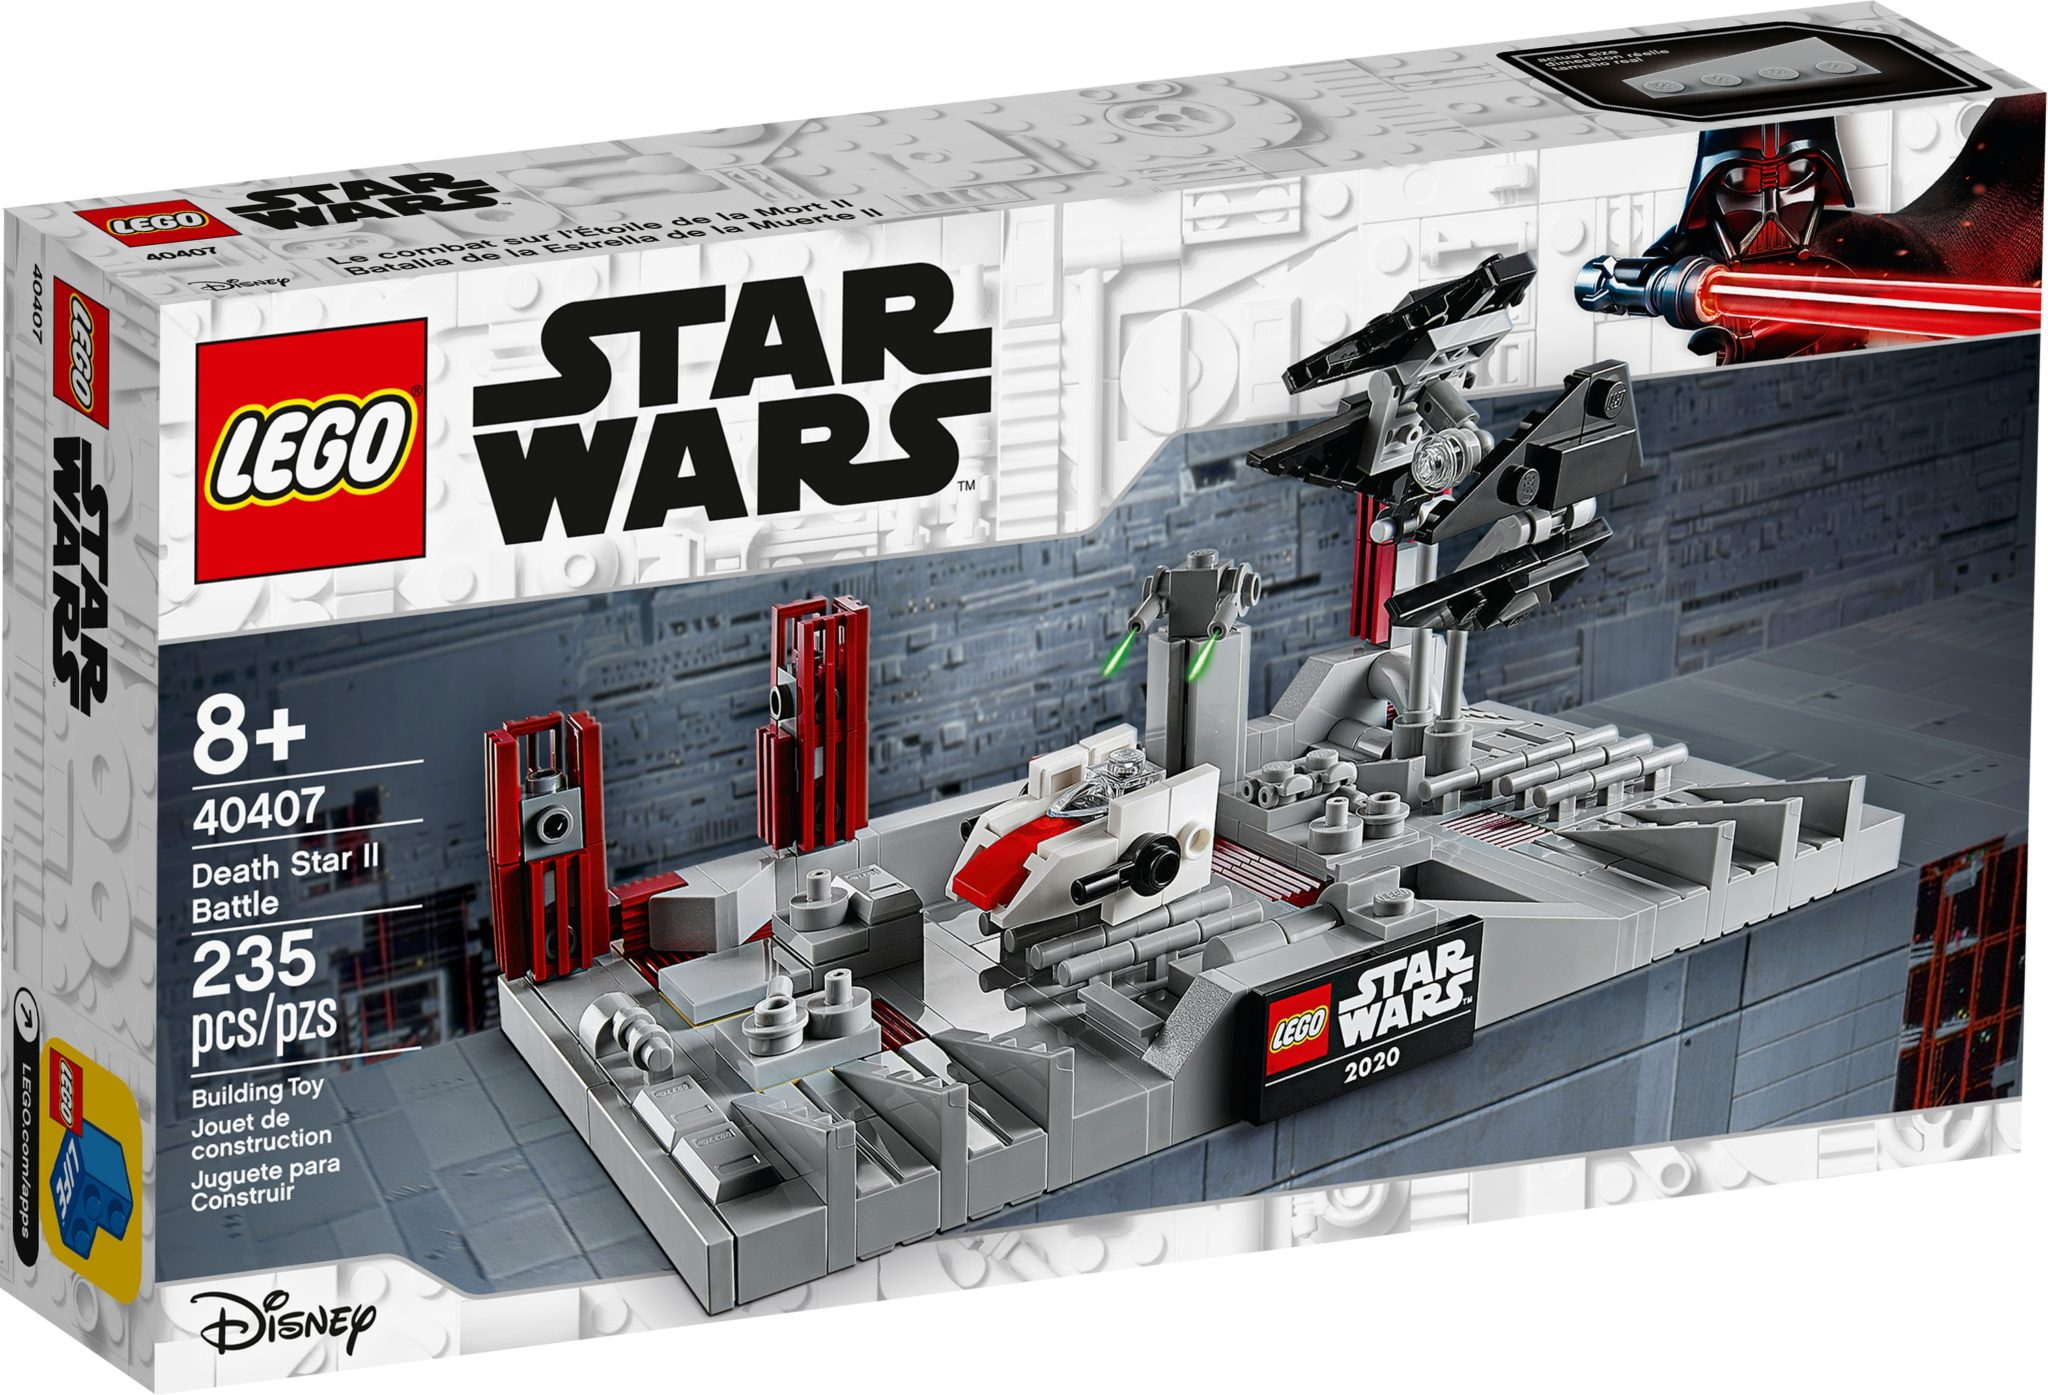 LEGO Star Wars 40407 Death Star 2 Battle als May the 4th Geschenk